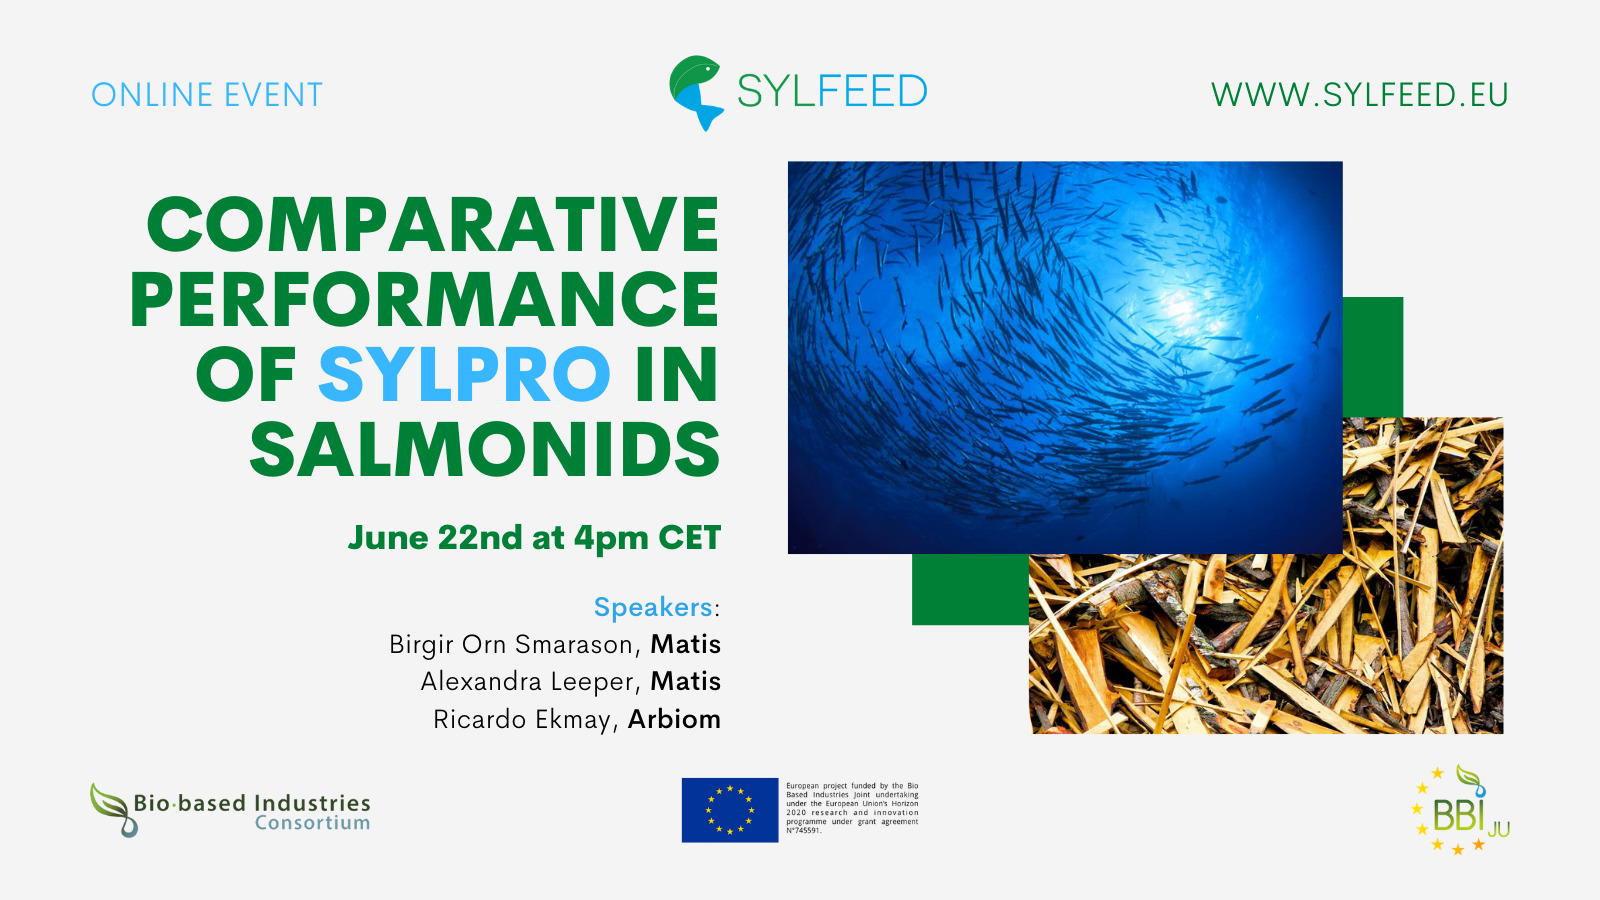 SYLFEED Webinar on Comparative Performance of SylPro in Salmonids – Recording